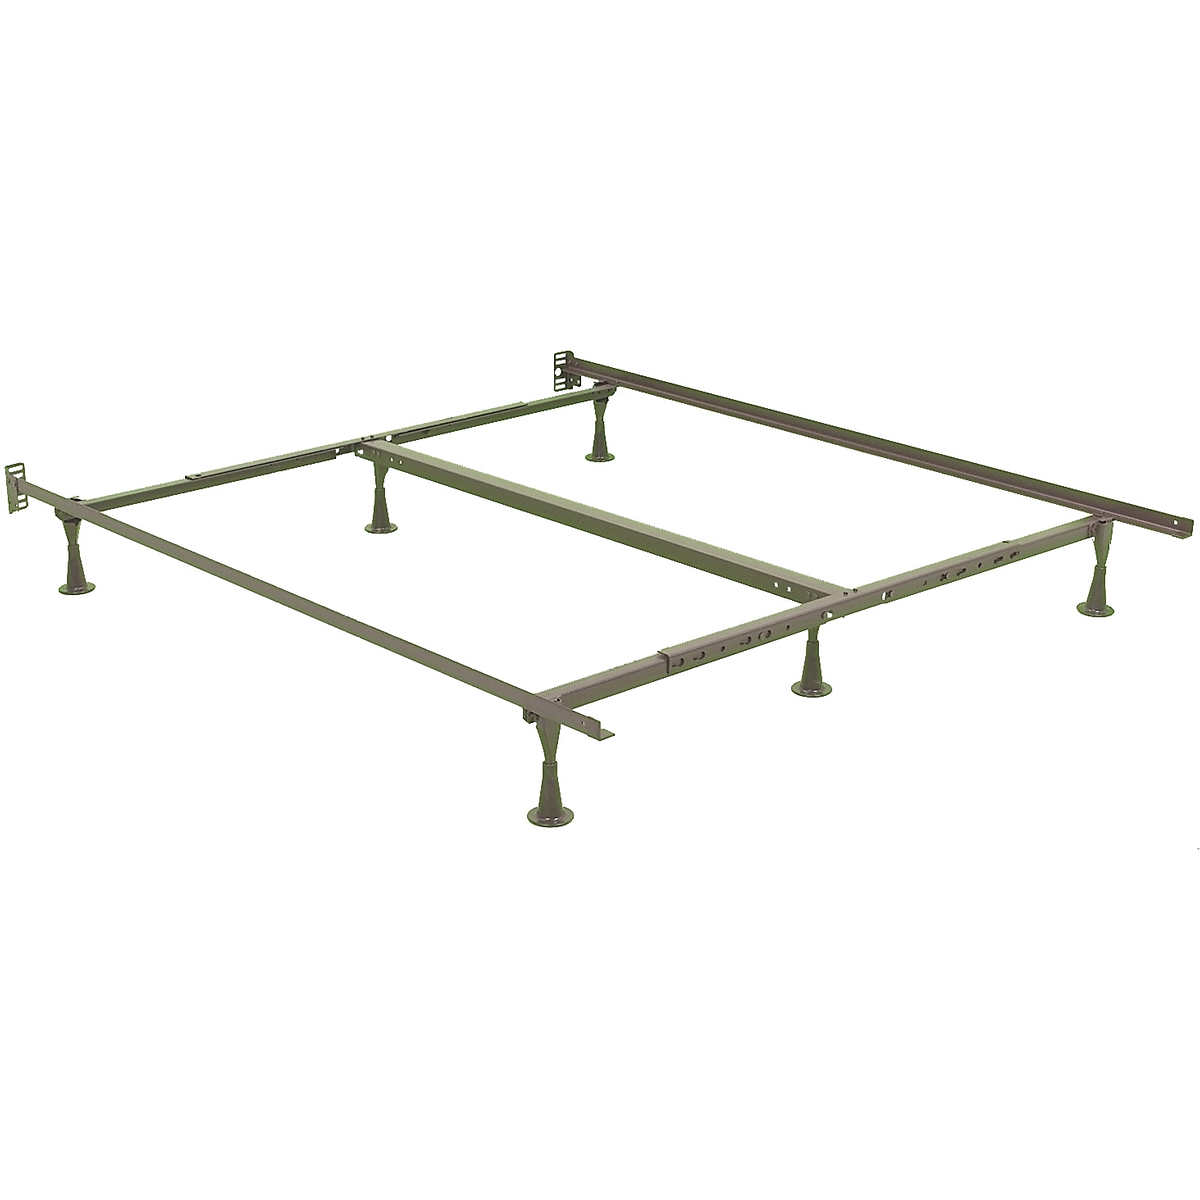 metal bed frame assembly king suitable with adjustable metal bed frame king suitable with antique metal bed frame king